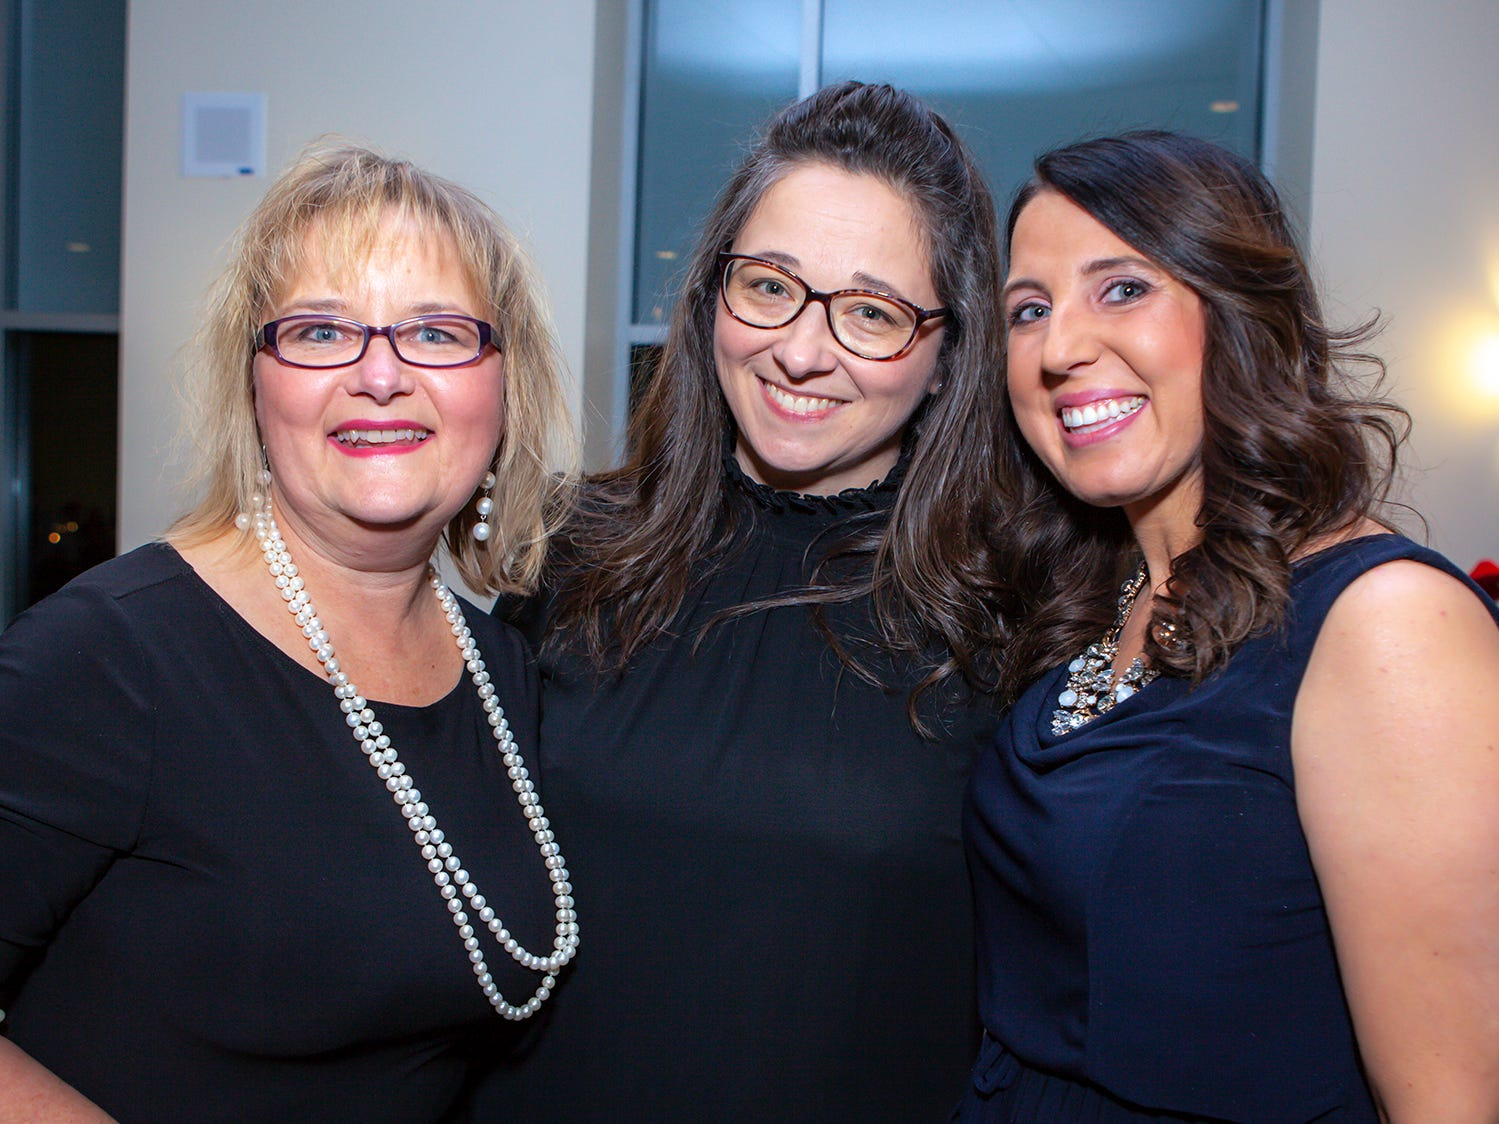 Lisa Trail, Lea Bartch and Tori Carrat the 2019 Excellence in Education Gala, hosted by the City Schools Foundation on Friday, Jan. 25, 2019 at Stones River Country Club in Murfreesboro.